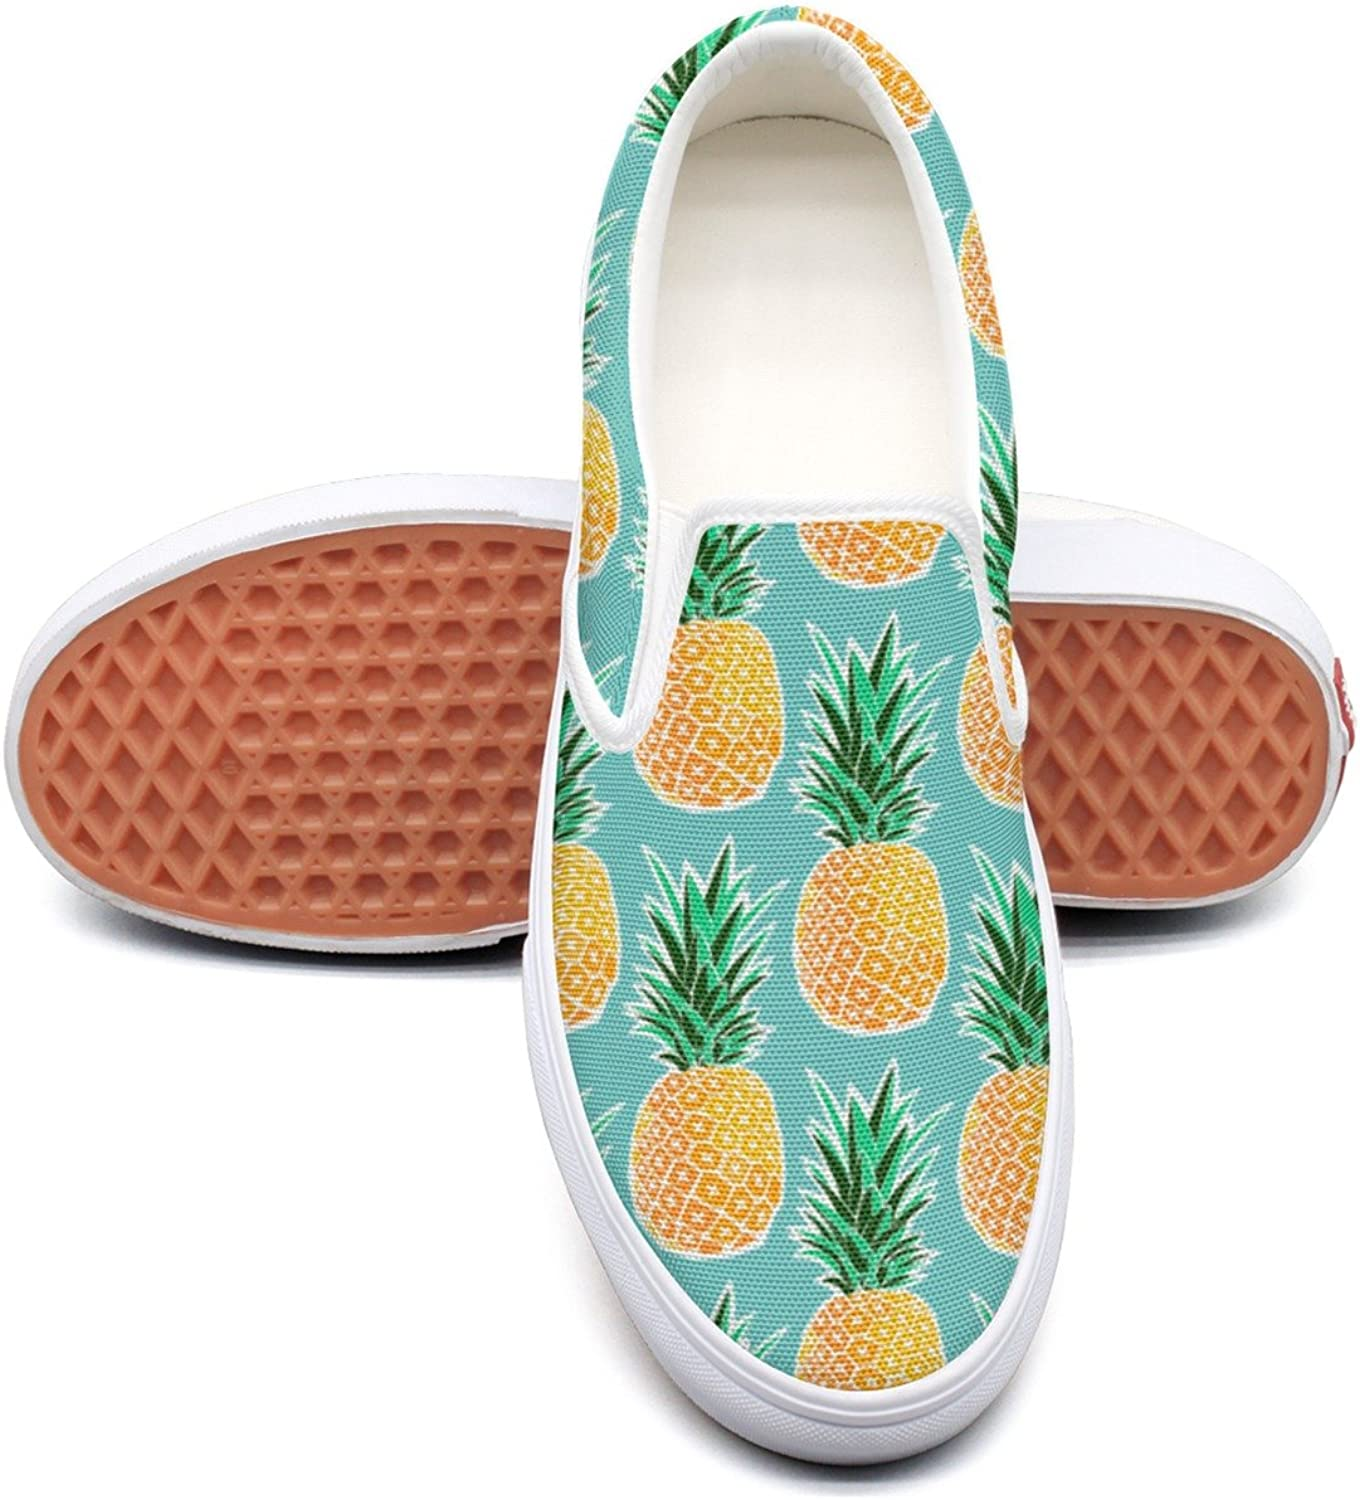 Hjkggd fgfds Casual Tropical Pineapple Green Geometric Womens Ladies Canvas shoes